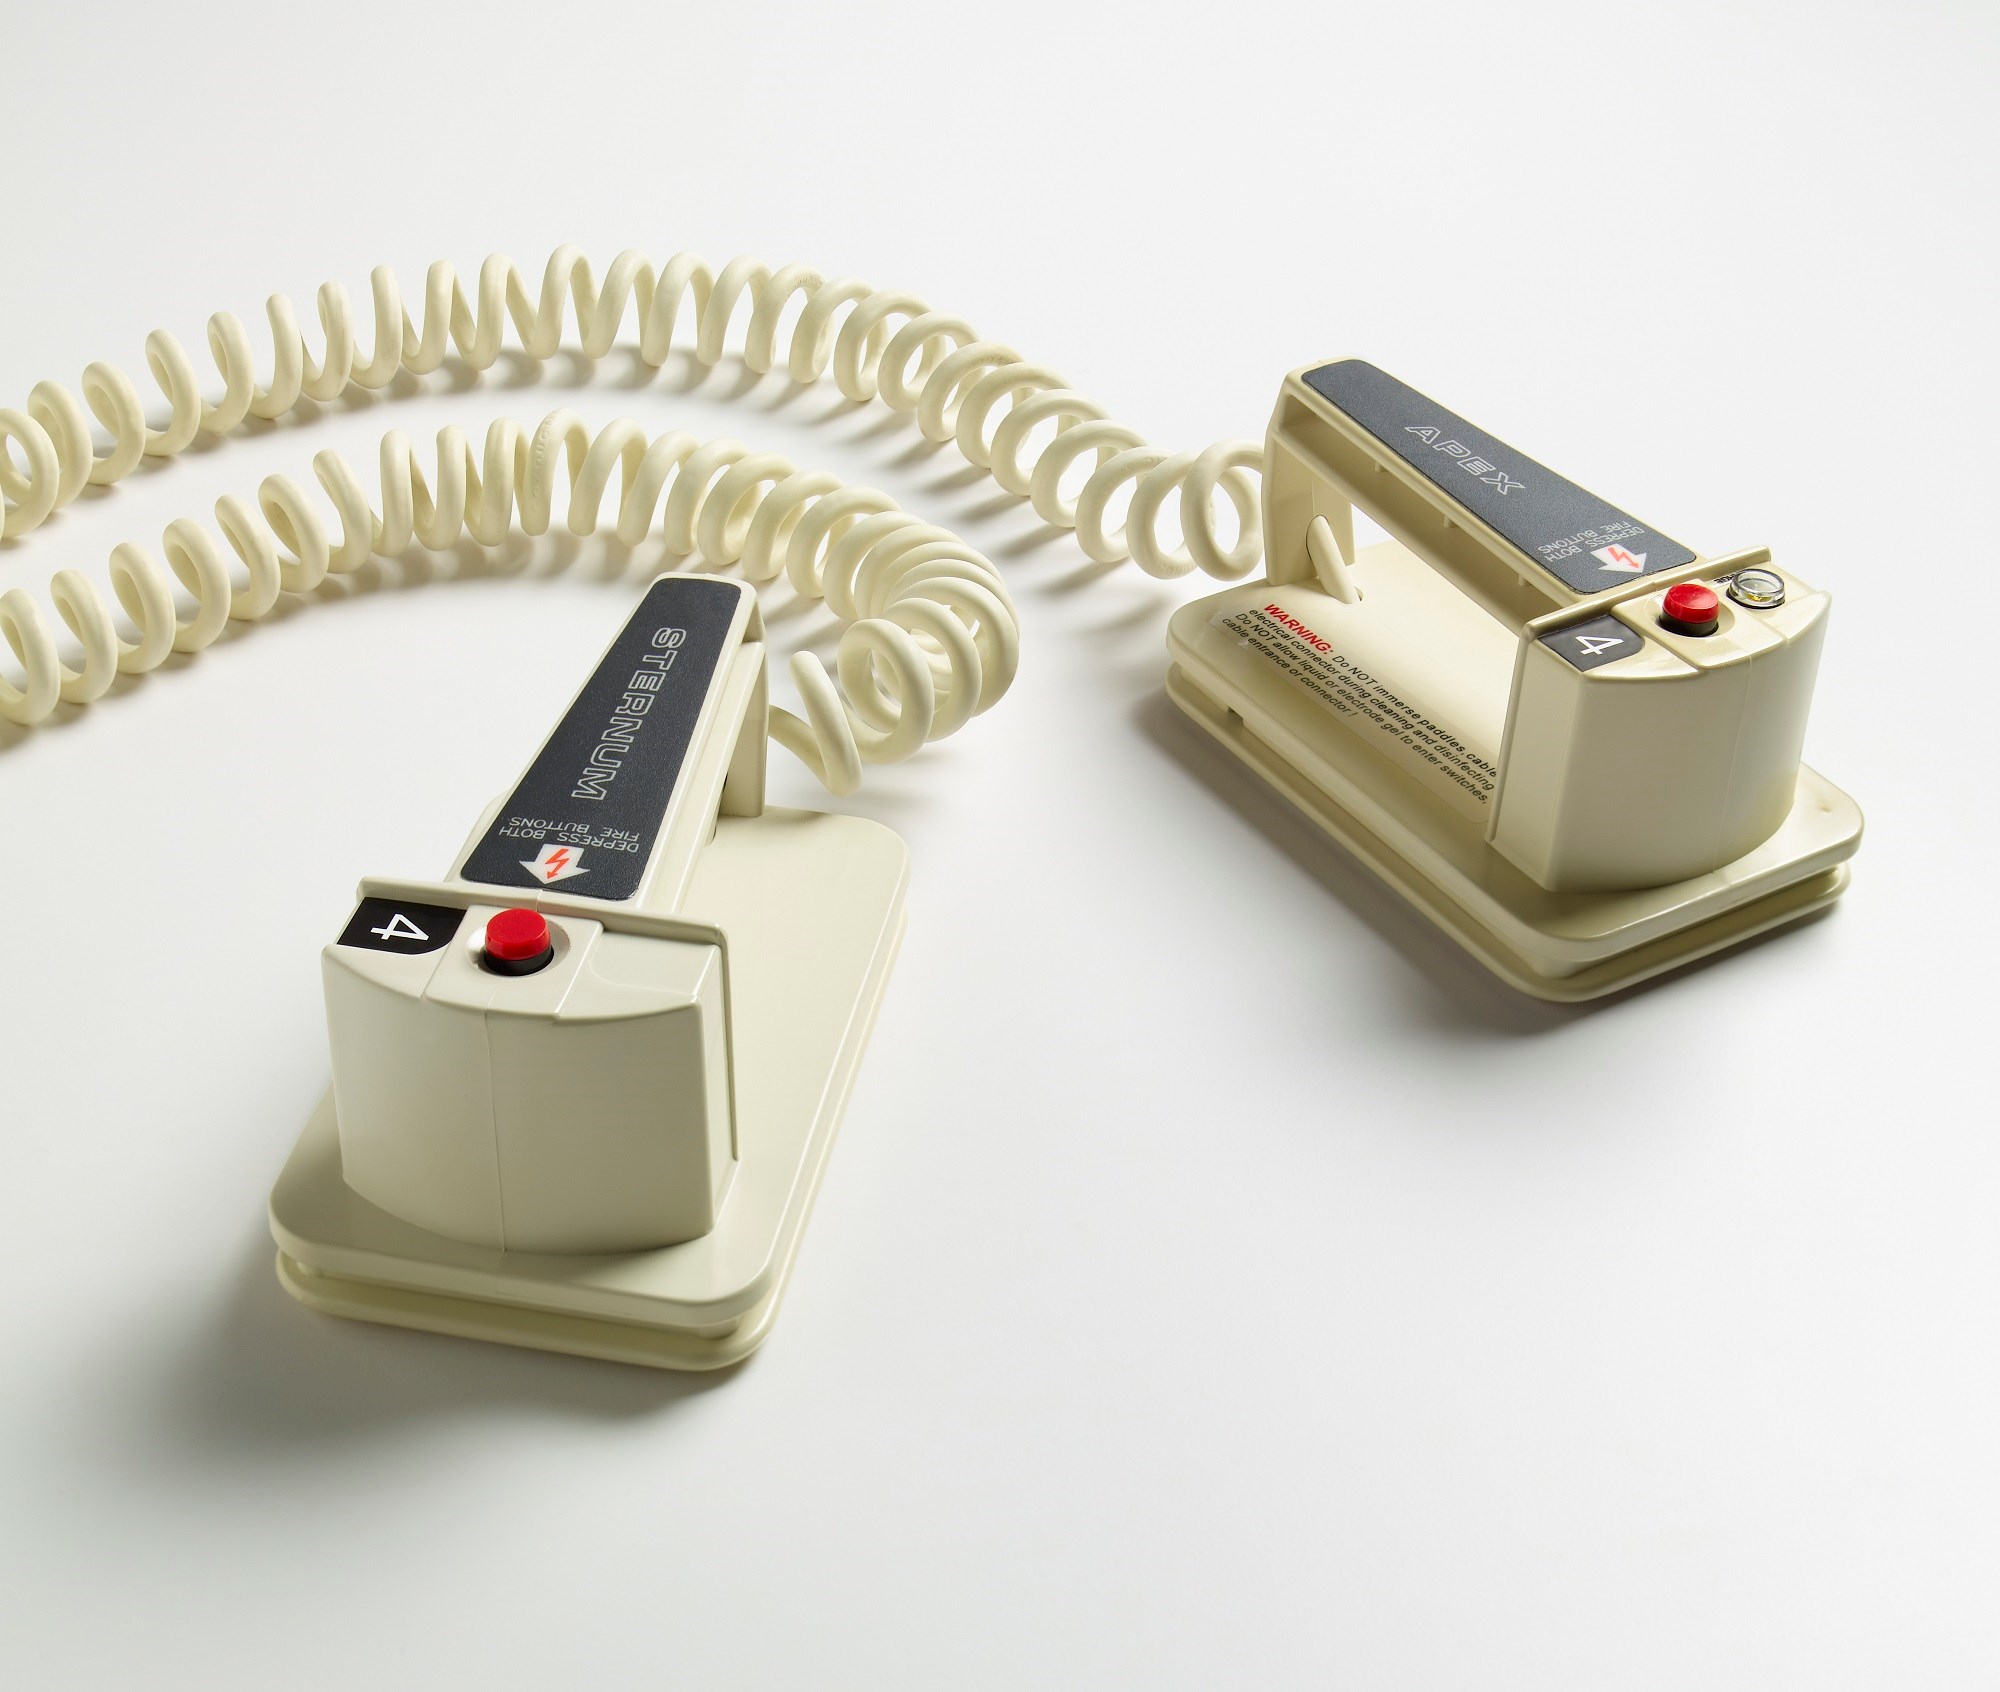 Time to Defibrillation Not Linked to Survival in Pediatric In-Hospital Cardiac Arrest